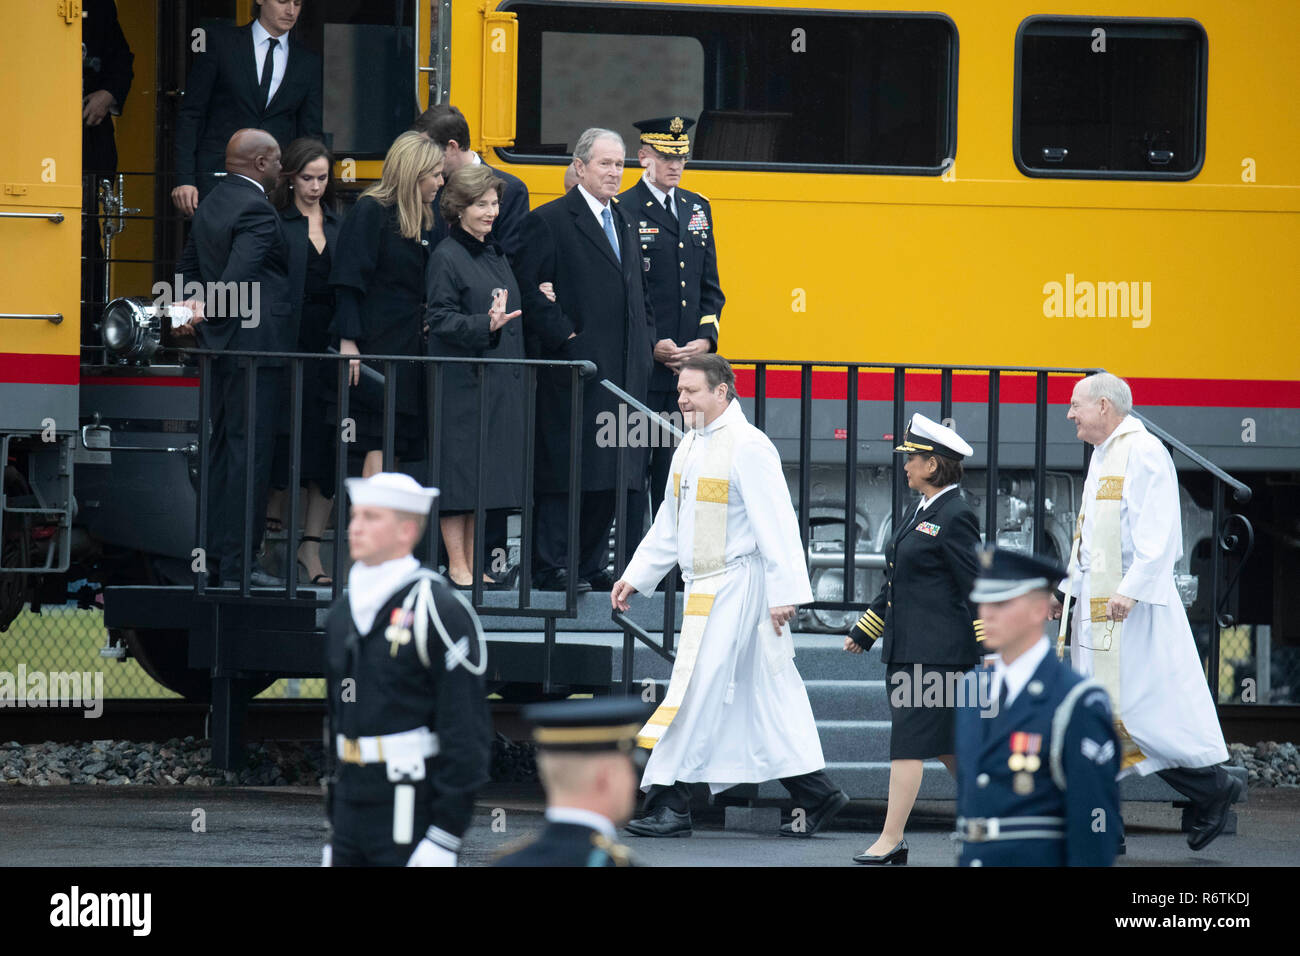 Former Pres. George W. Bush, wife Laura, and family step off train carrying the casket of Bush's father, former President George H.W. Bush, upon its arrival at Texas A&M University before burial at the nearby George Bush Library. Stock Photo